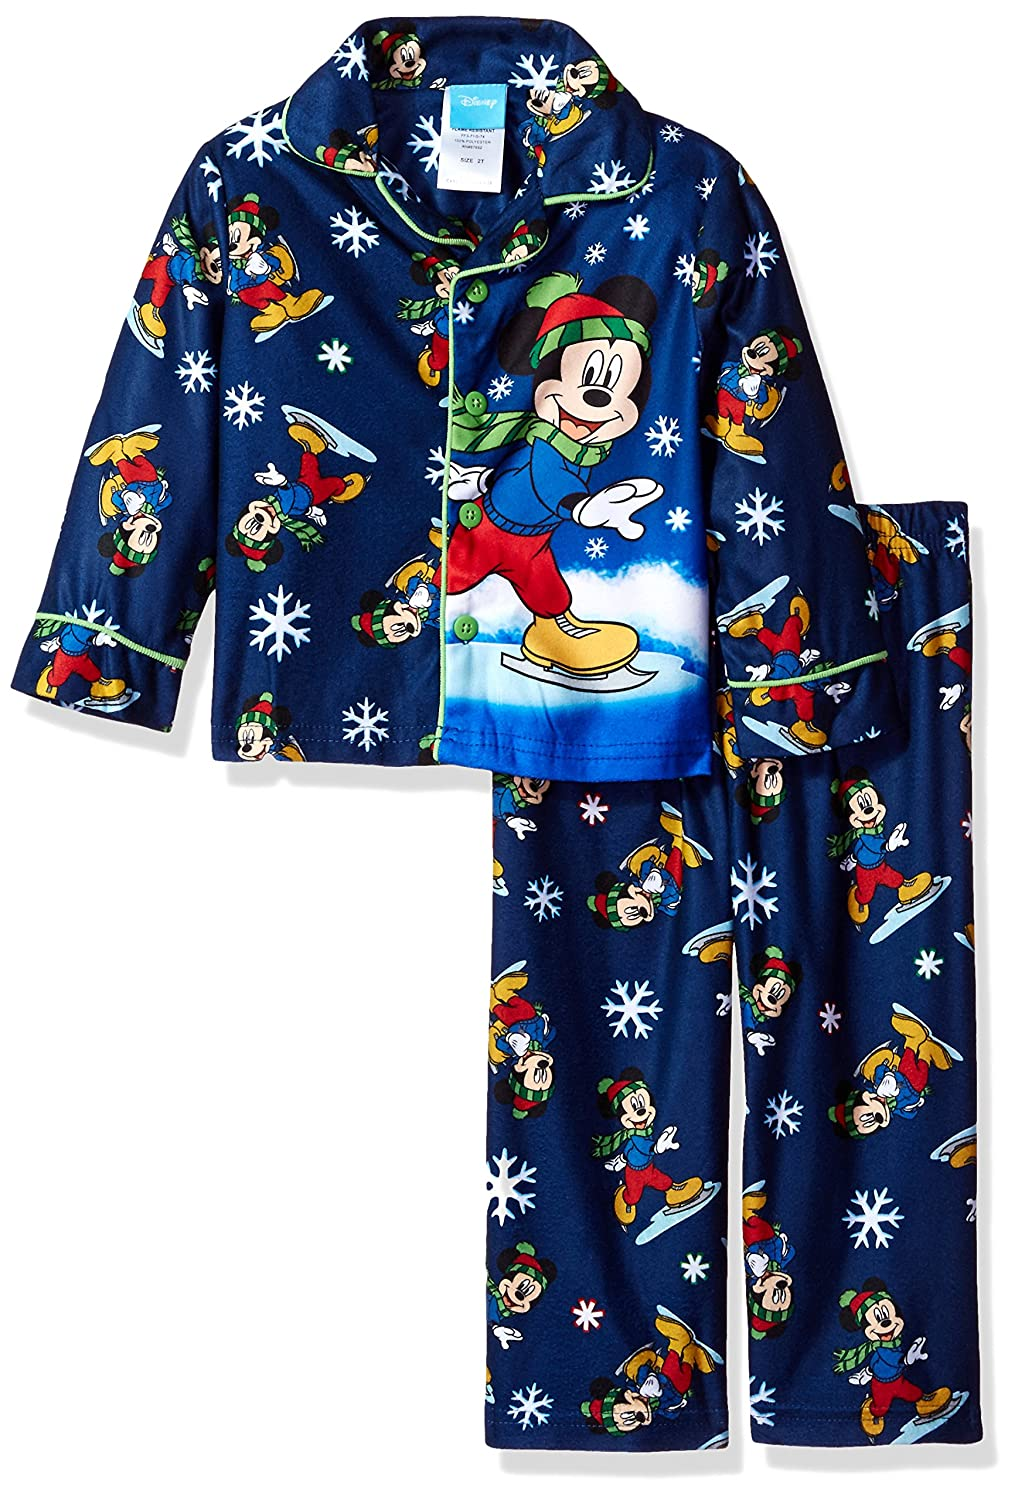 Disney Toddler Boys' Mickey Mouse 2-Piece Pajama Coat Set, Blue, 2T 21MK306ECLDZ